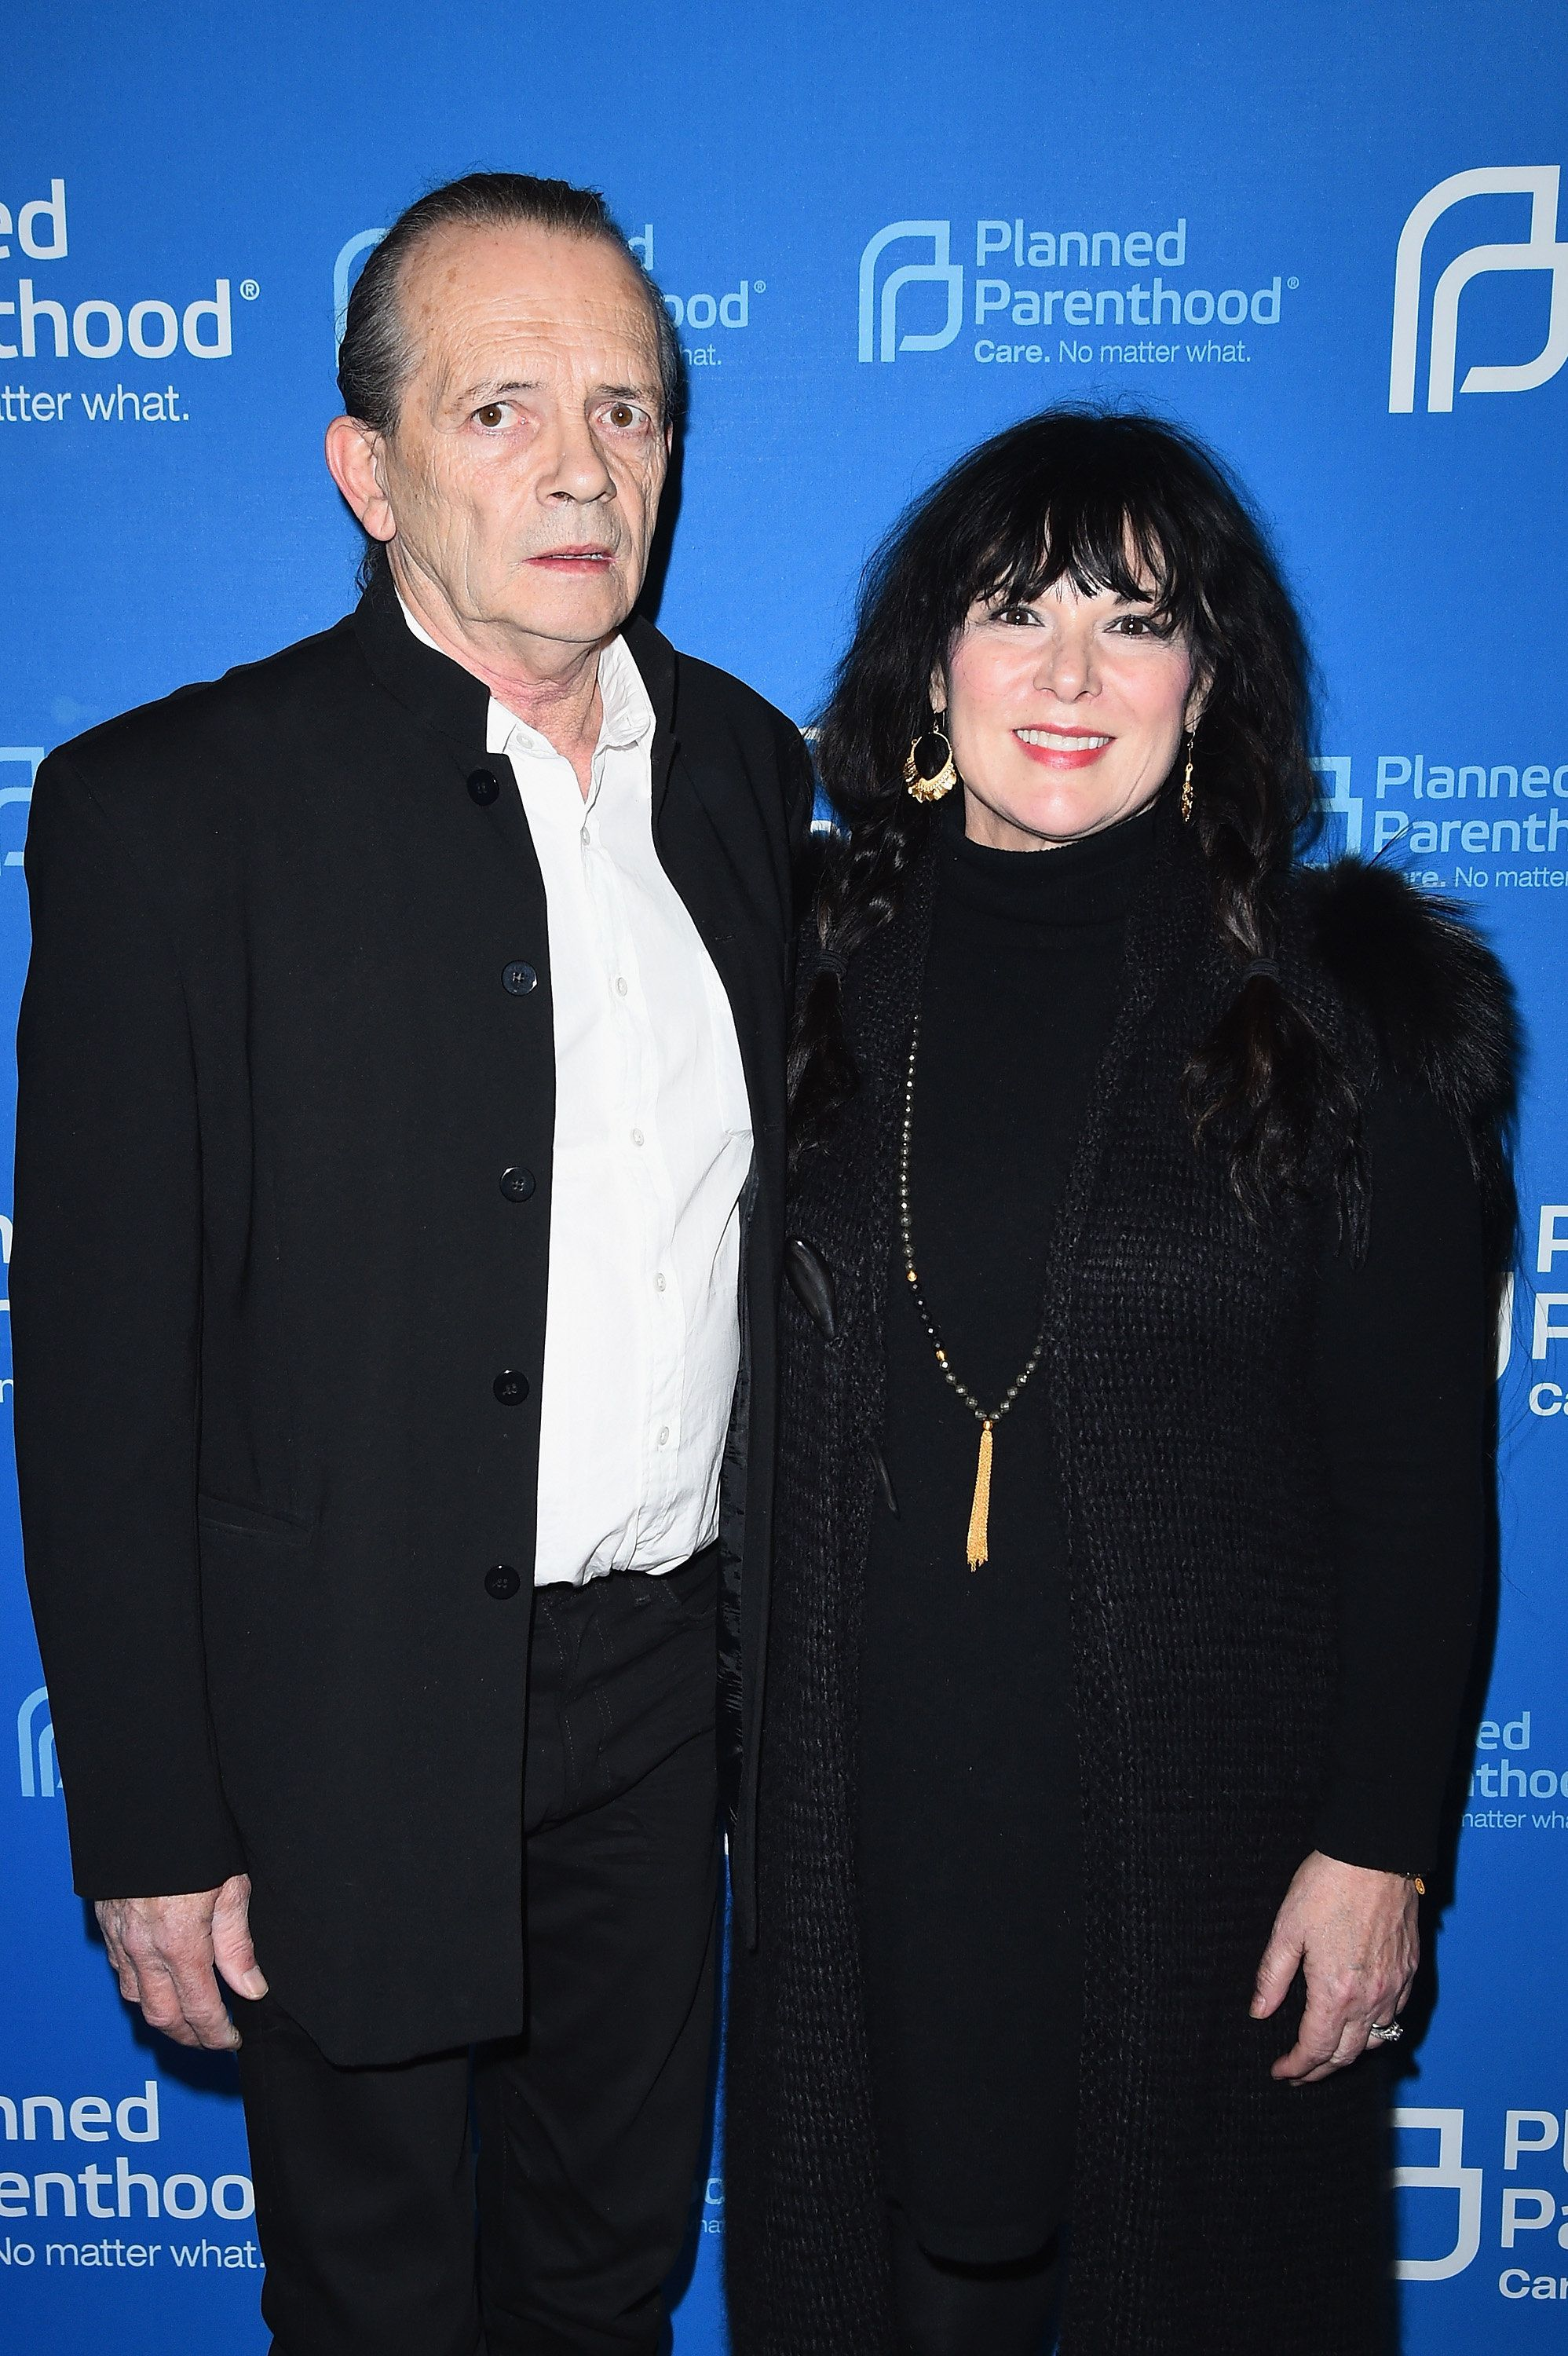 Dean Wetter and Ann Wilson attend the Lena Dunham and Planned Parenthood Host Sex, Politics & Film Cocktail Reception on